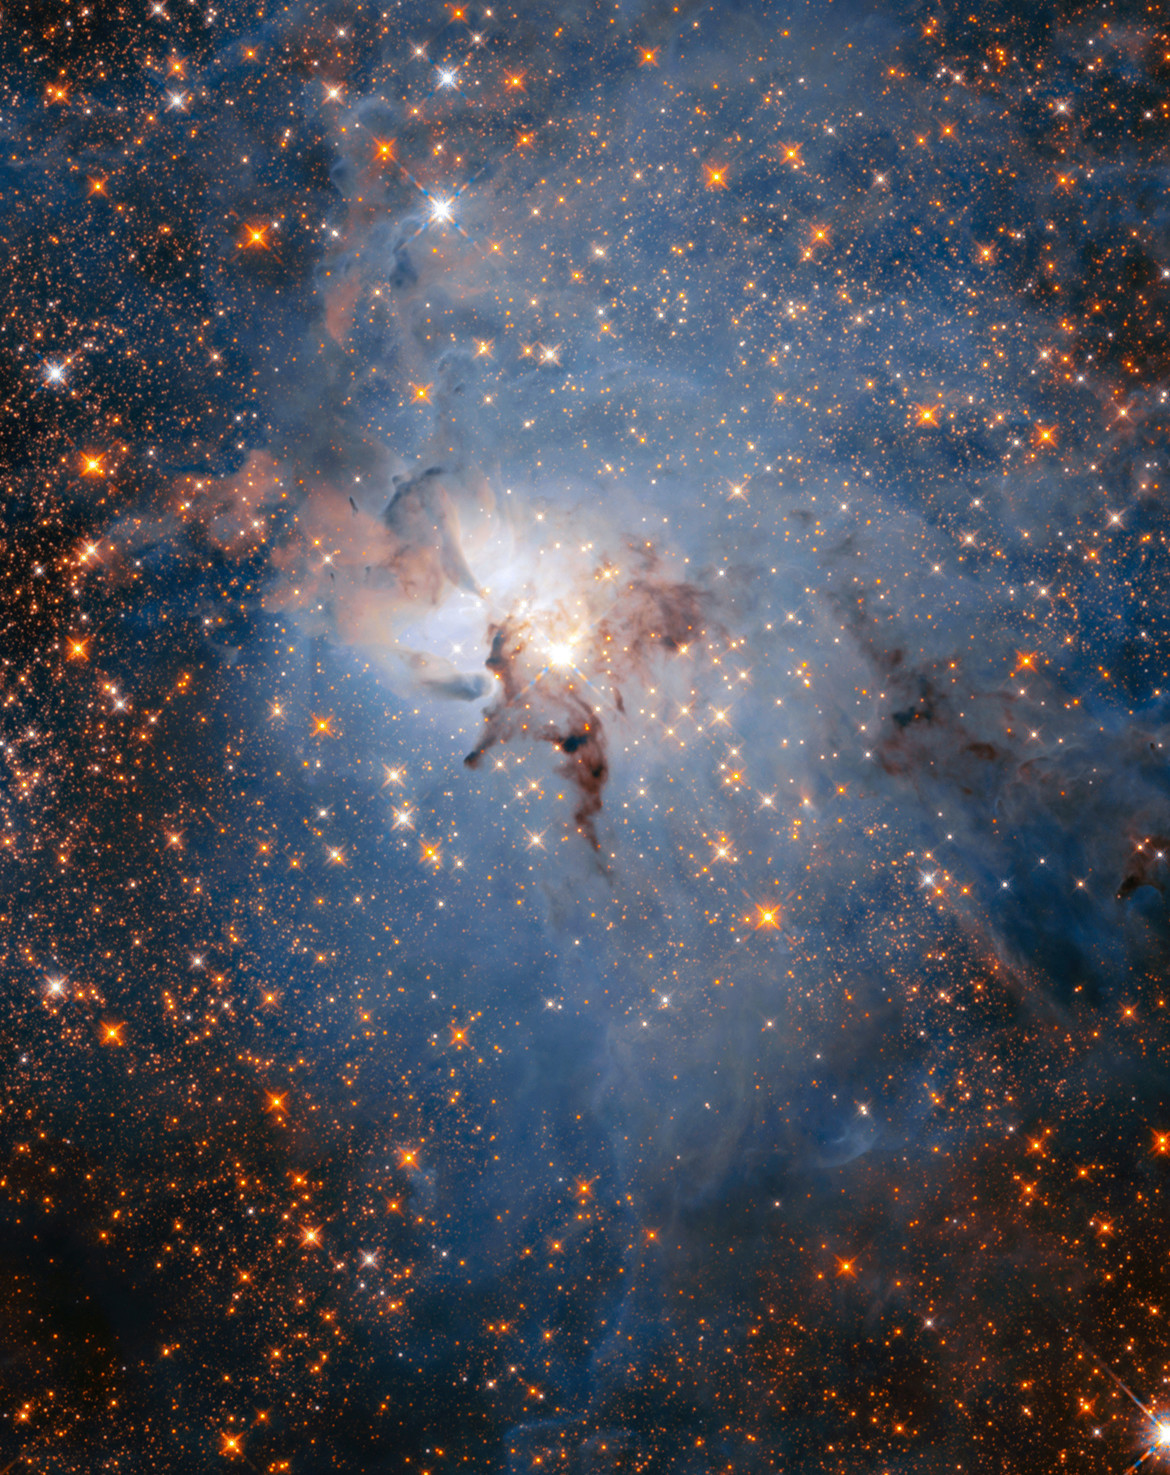 In the infrared, light from more distant background stars can poke through the Lagoon Nebula, which can barely be seen as wisps of dust in this Hubble Space Telescope image. Credit: NASA, ESA, STScI